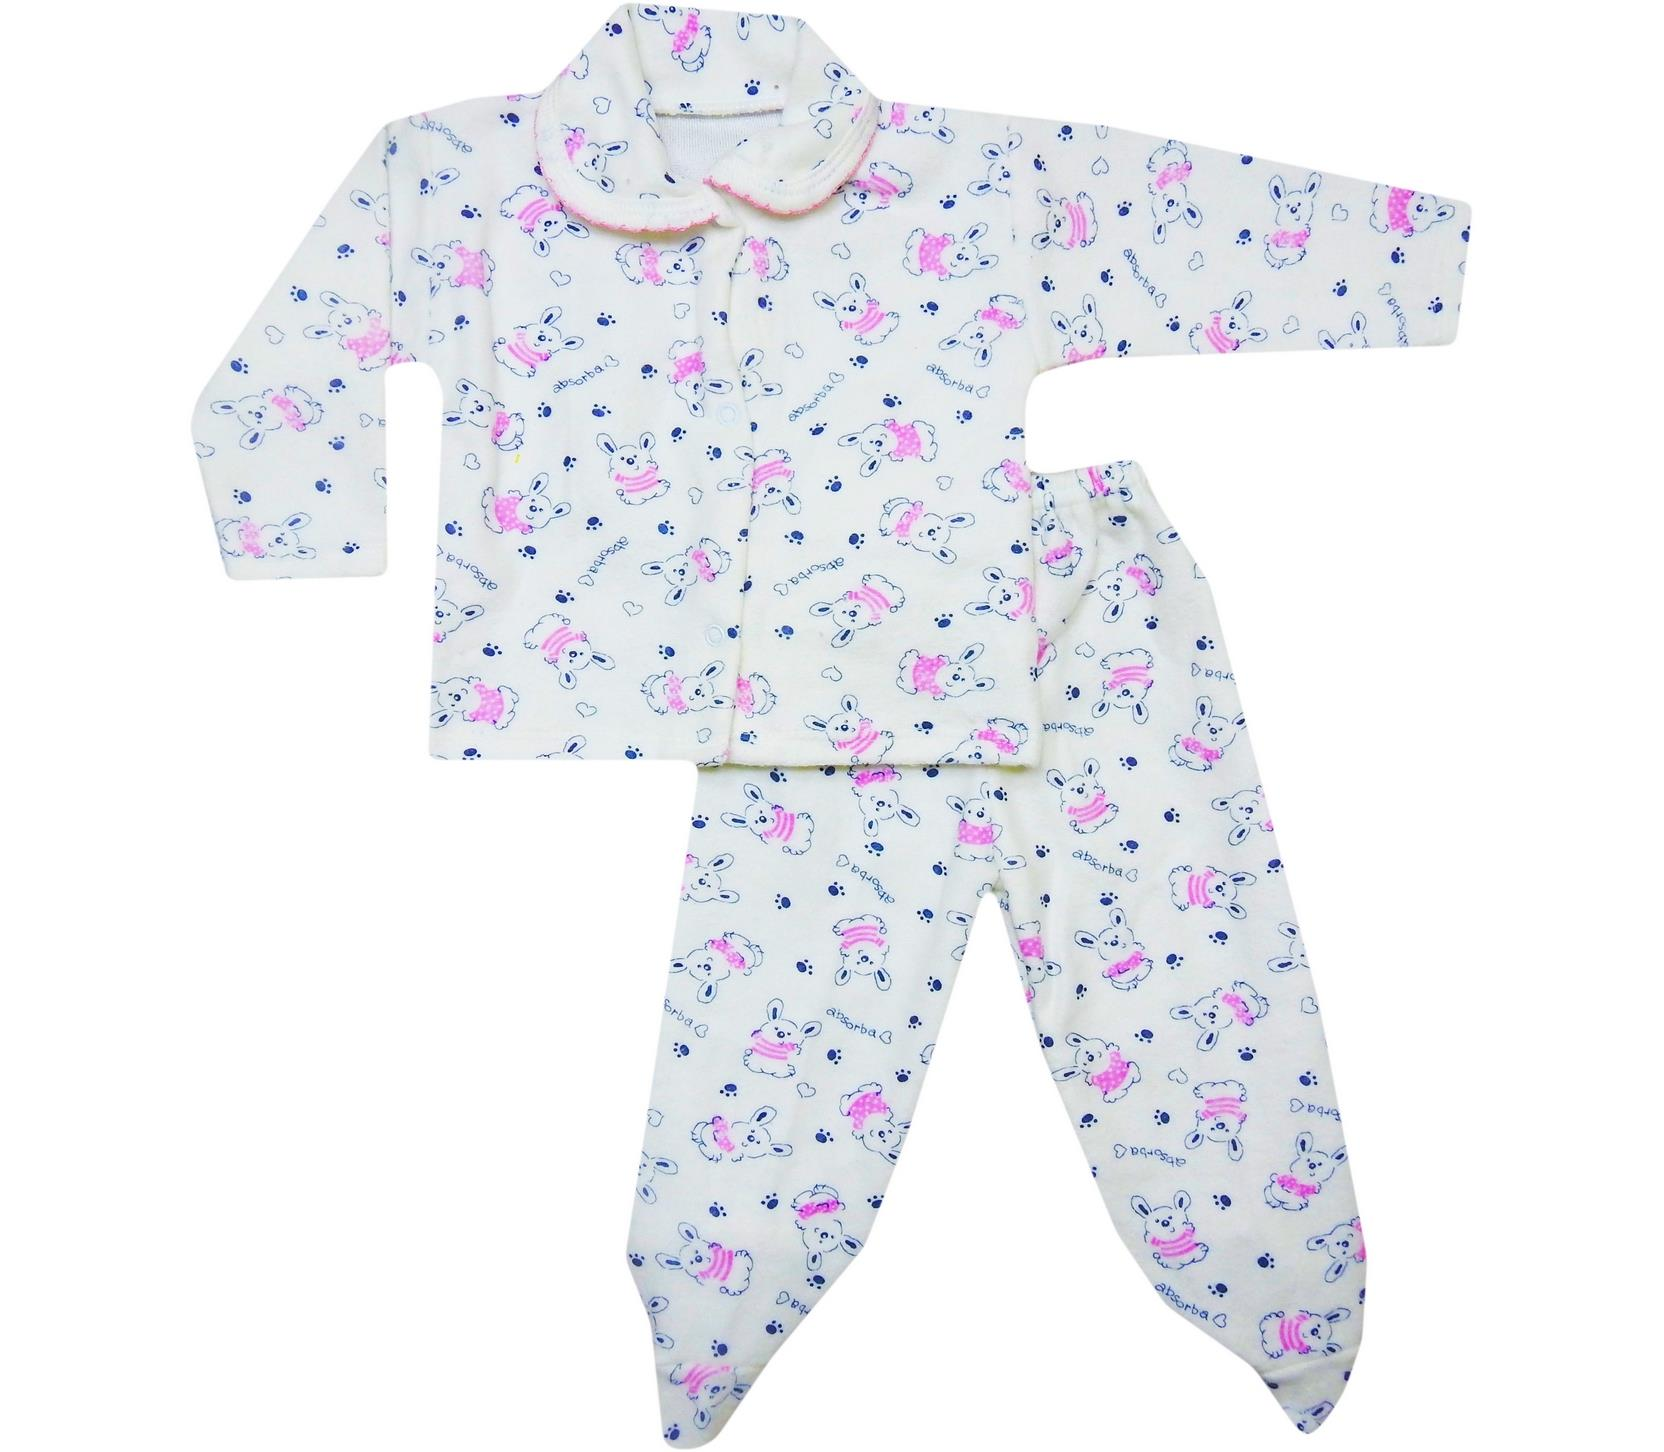 106 wholesale pajamas for babies 9-18 month